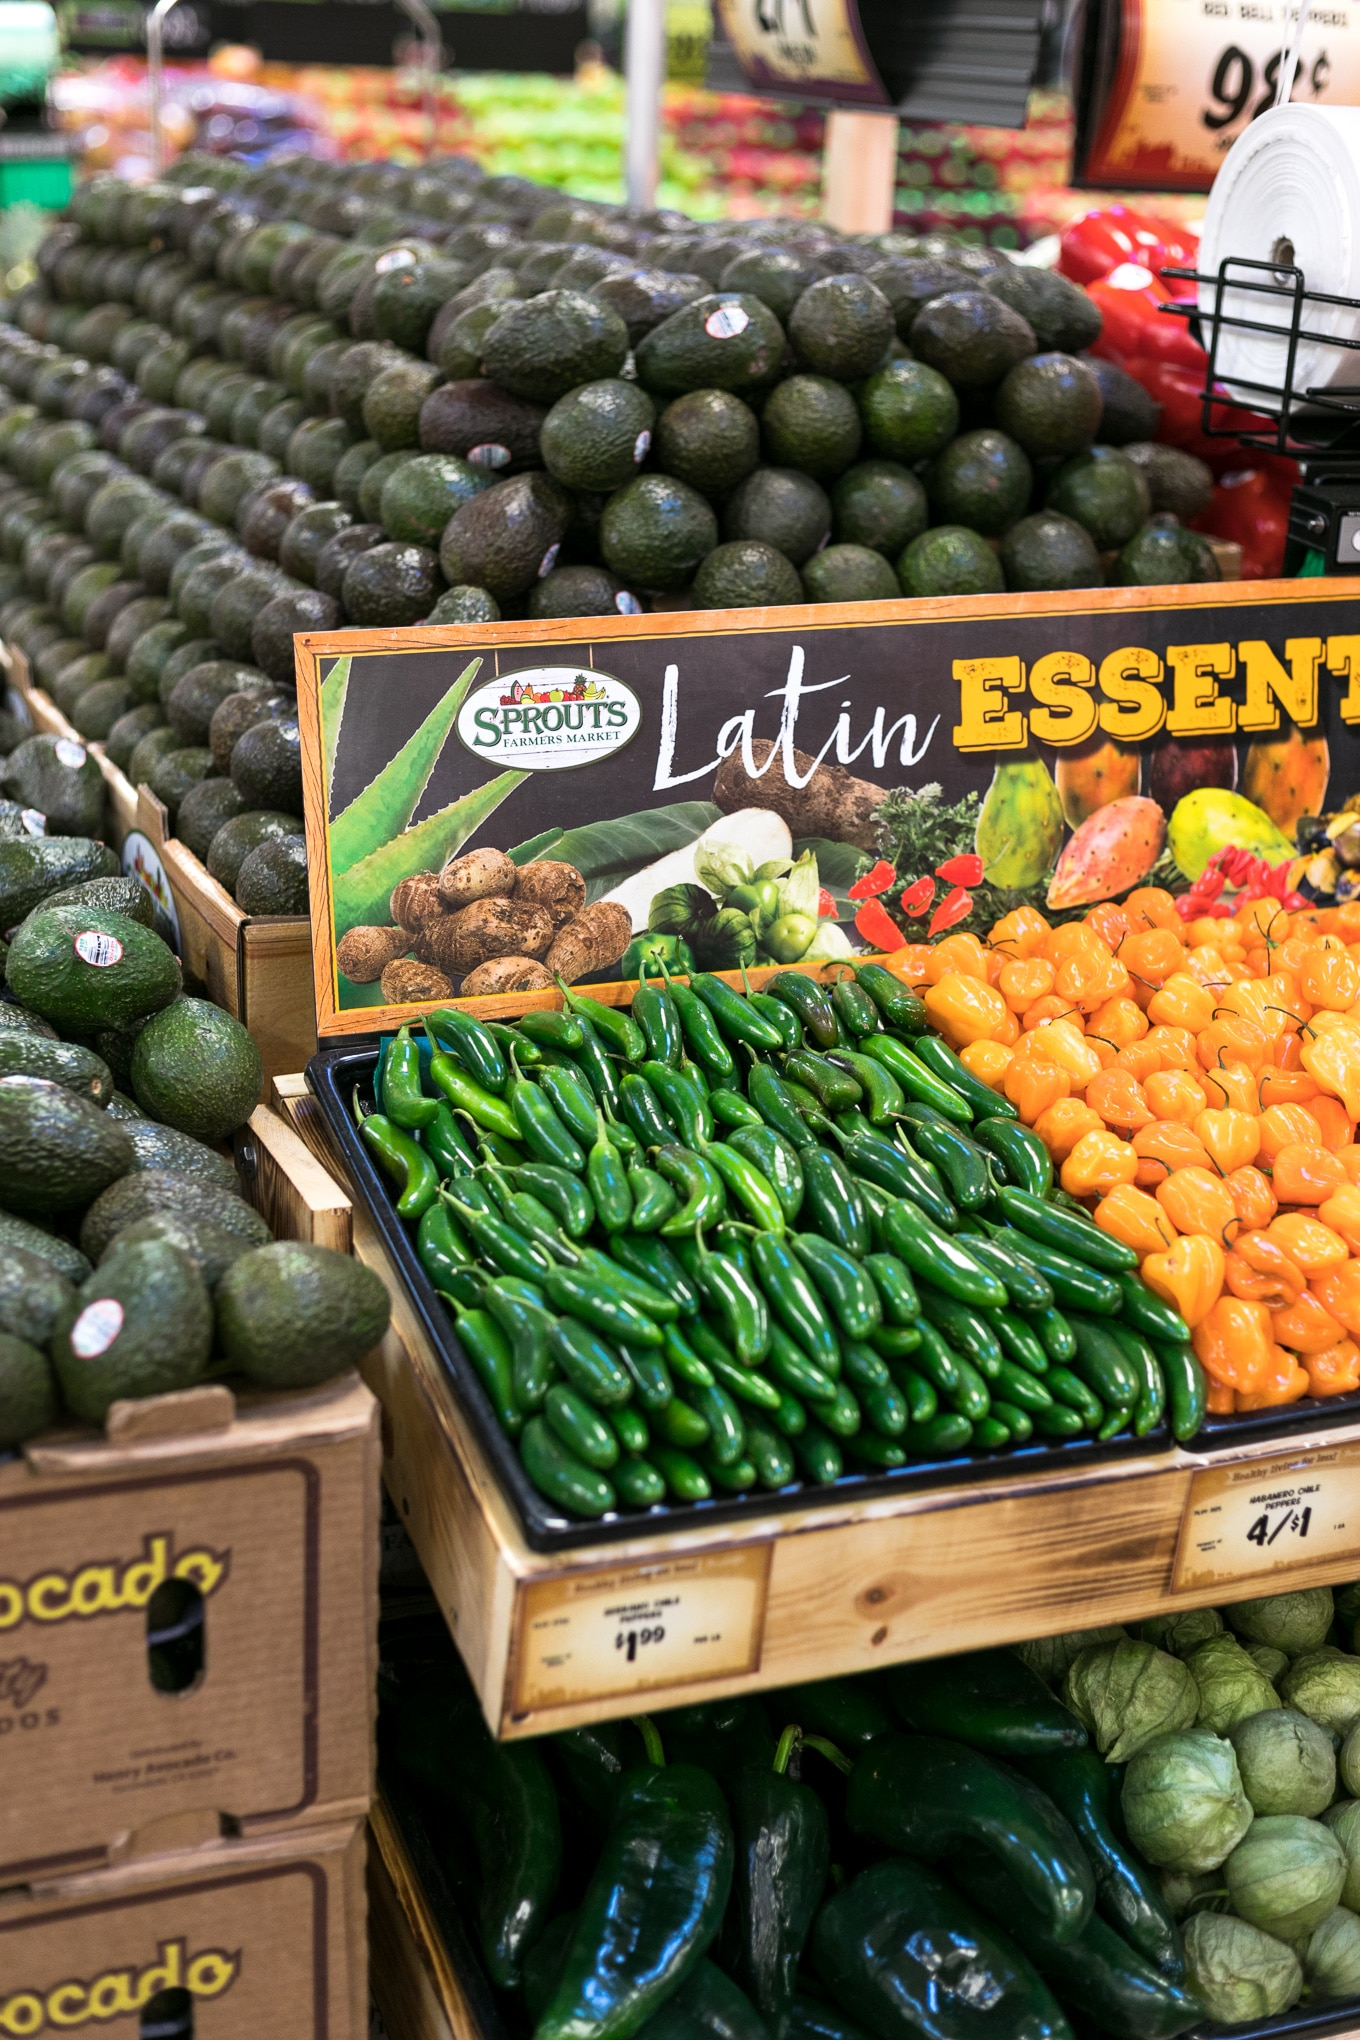 Photo of avocados and Latin cooking essentials at a Sprouts grocery store